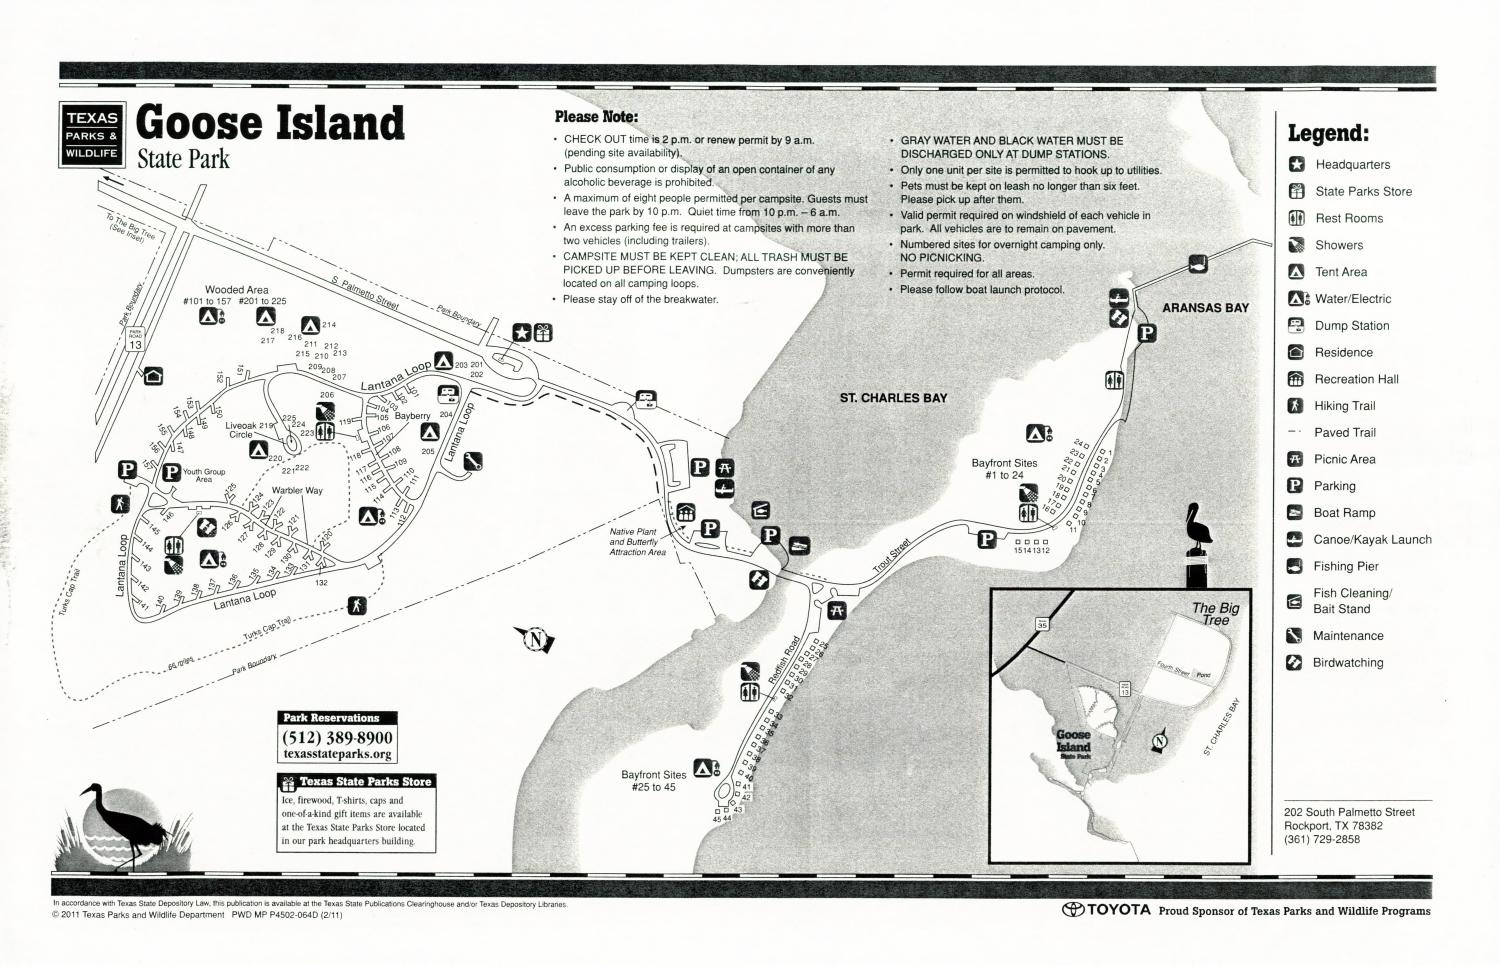 Goose Island State Park, Map of the Goose Island State Park outlining hiking trails and highlighting activities, facilities, and other features such as bathrooms, lodgings, water/electric, etc. It also contains general information for the park and for the Texas Parks and Wildlife Department. Additionally, there are various advertisements, including one with information about the Texas State Parks Pass.,